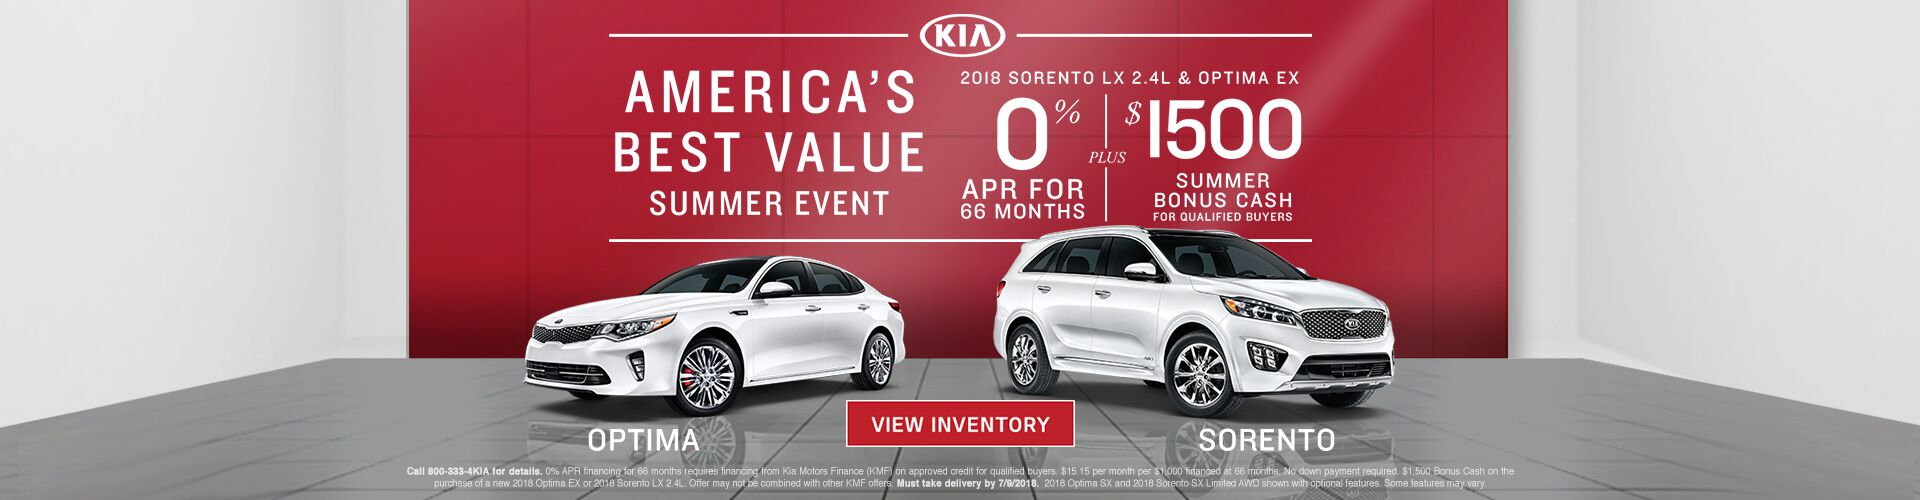 America's Best Value Summer Event at Fort Wayne Kia